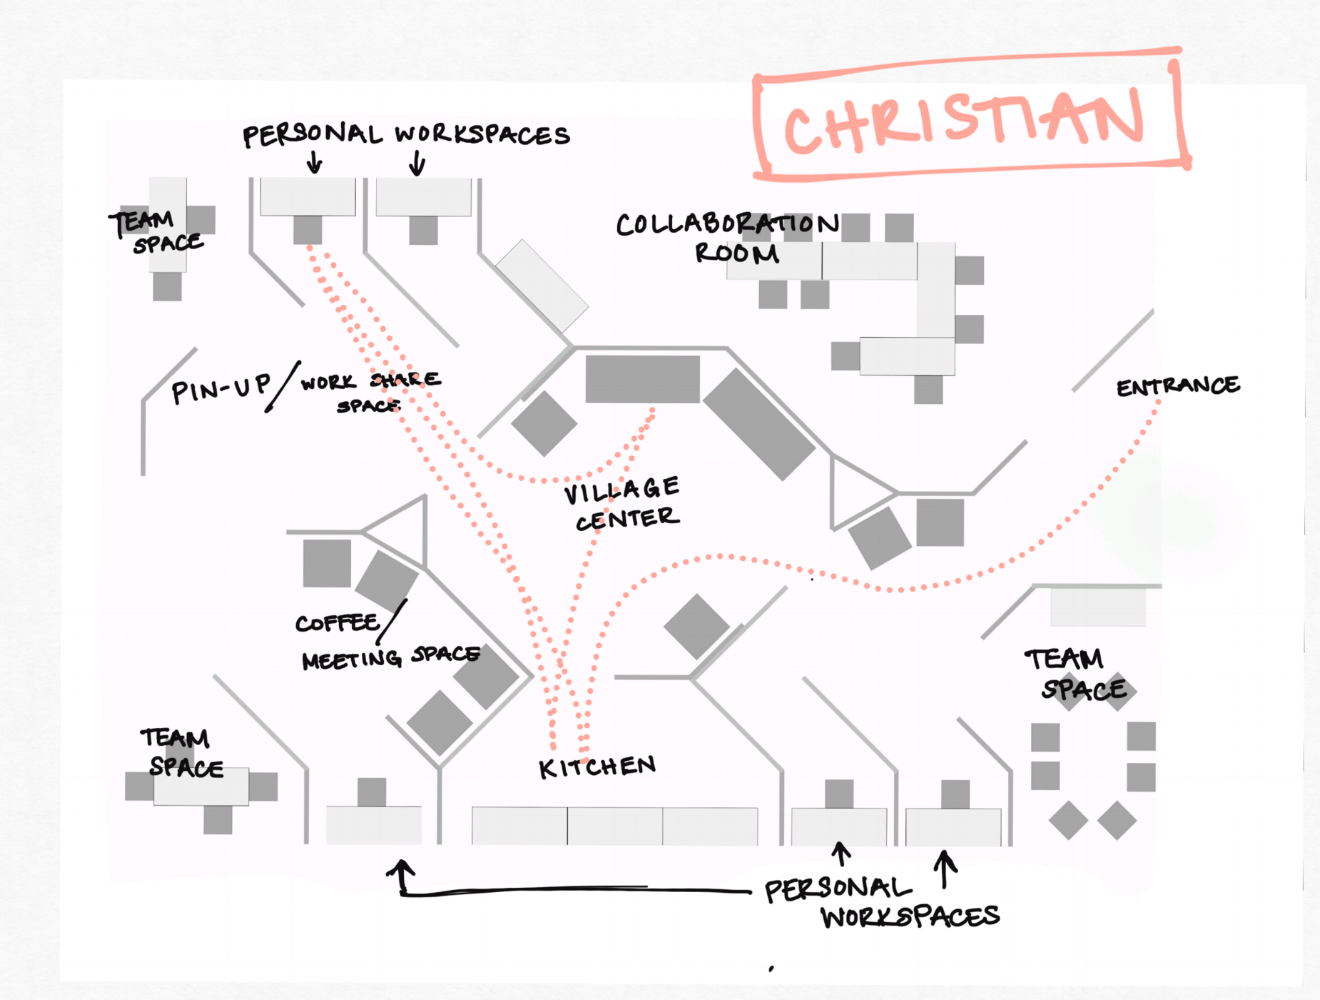 Christian prefers to work in a secluded environment. His interaction time is always on breaks - either during lunch or at the end of the day before he leaves work.